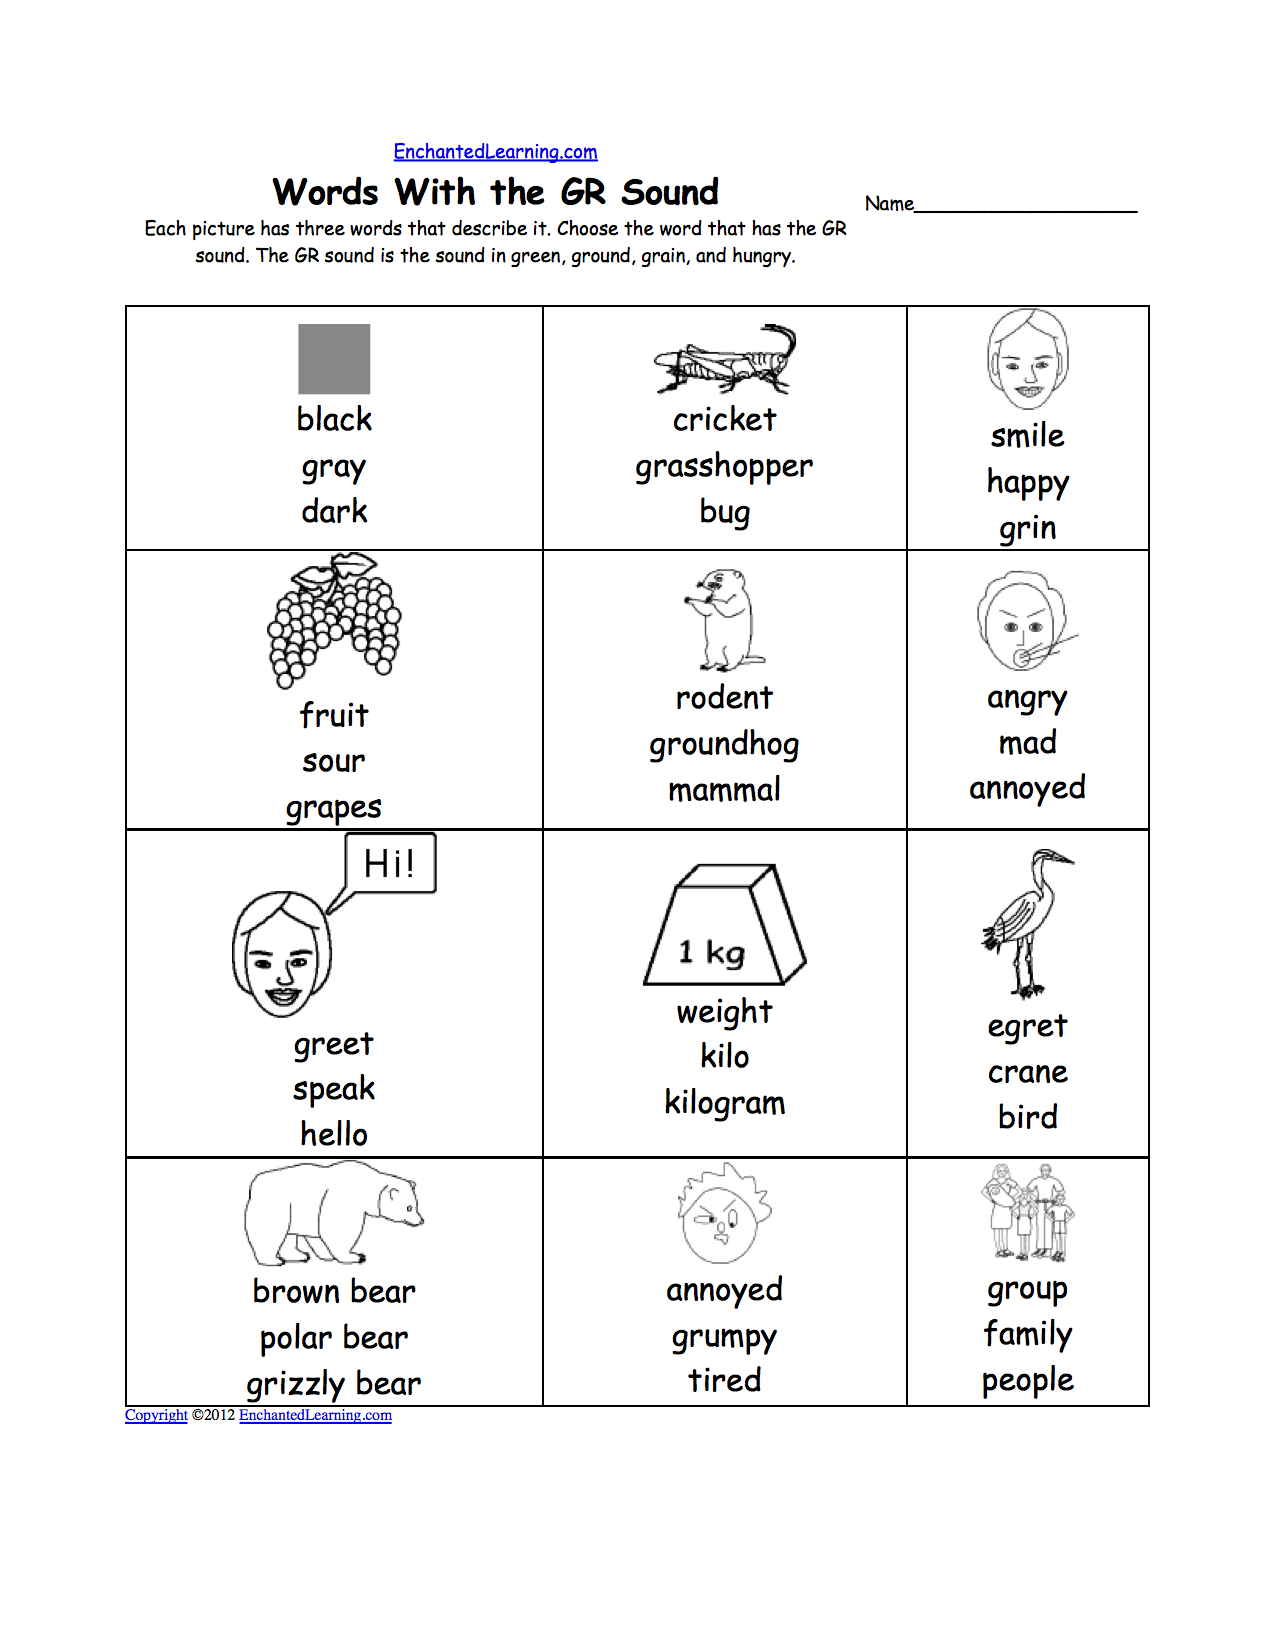 Worksheet Periodic Table Puzzles Ukrobstep – Worksheet Periodic Table Puzzles